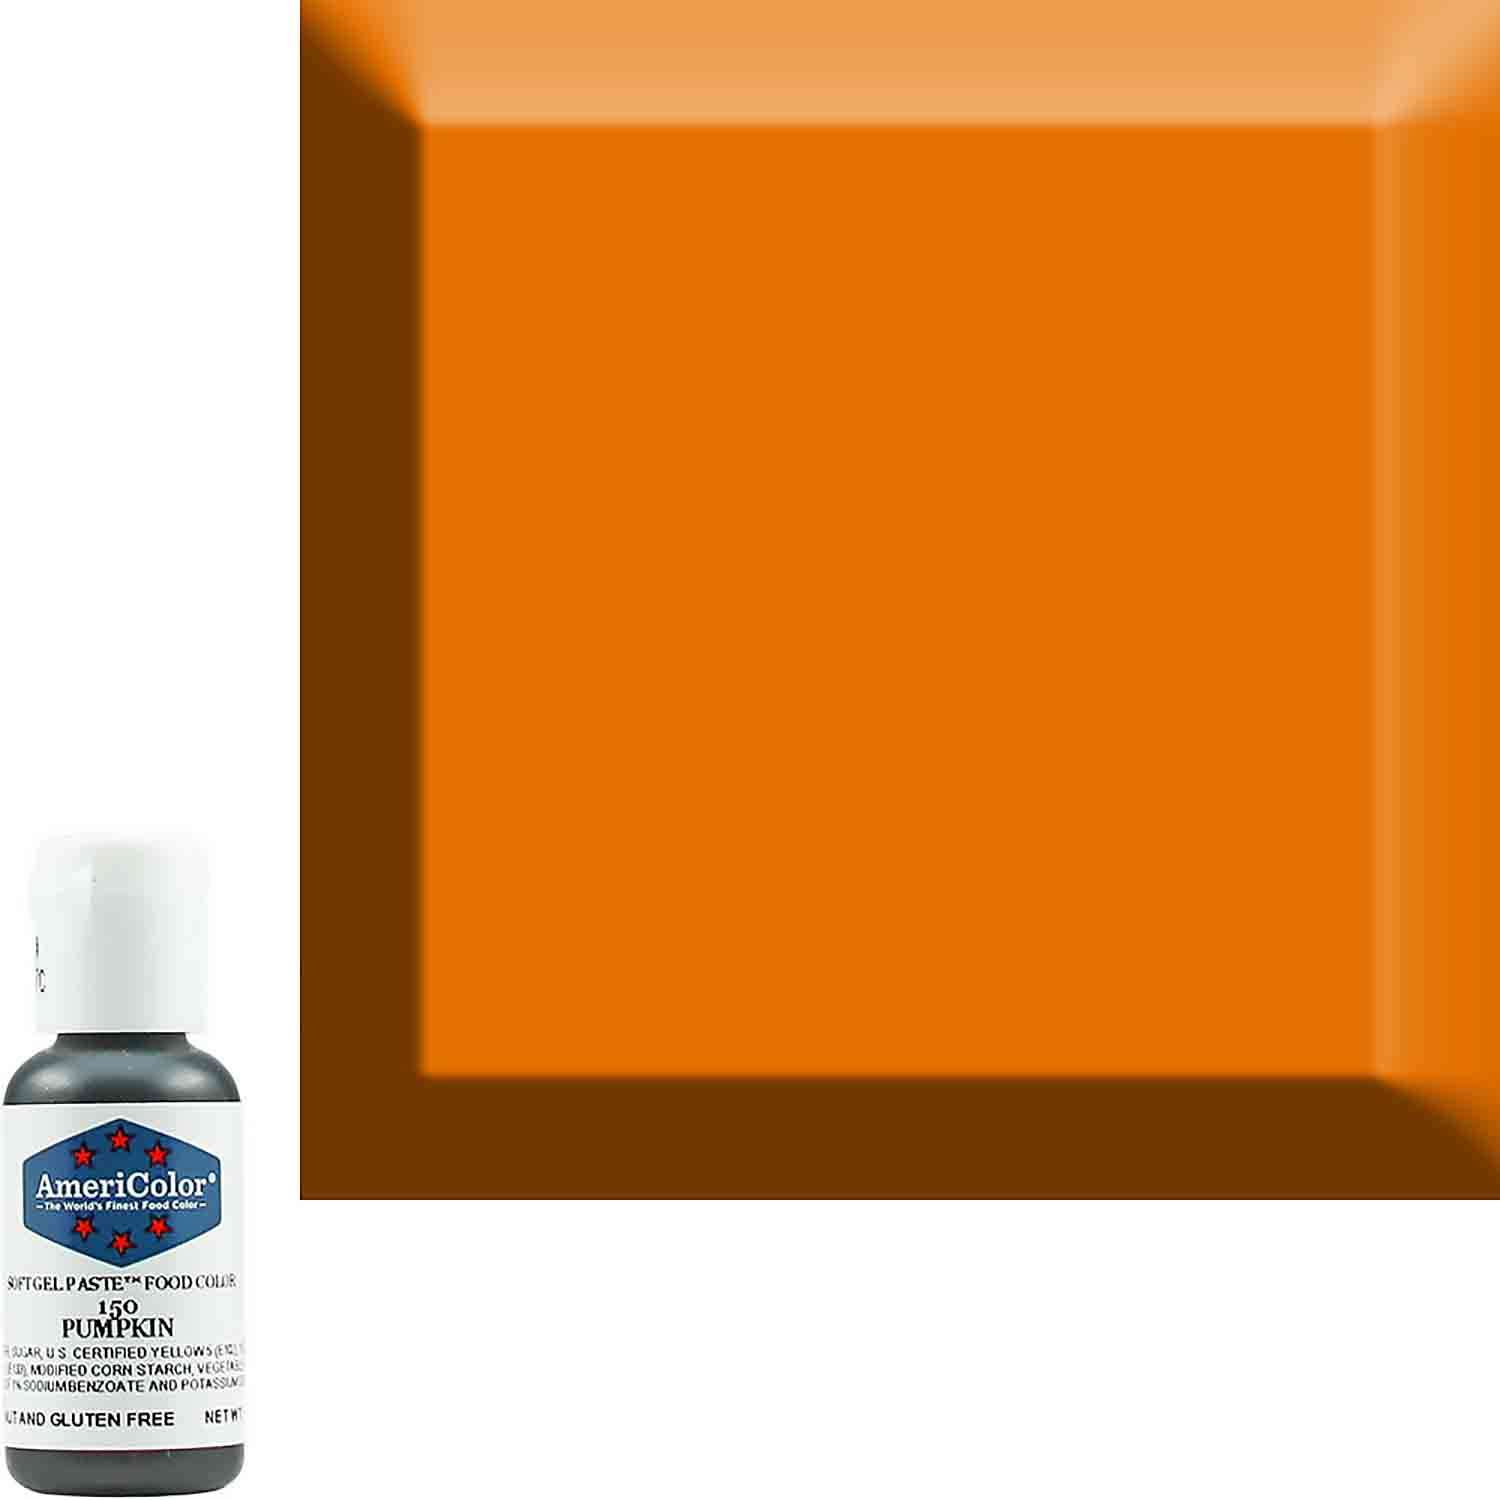 Pumpkin Soft Gel Paste™ Food Color